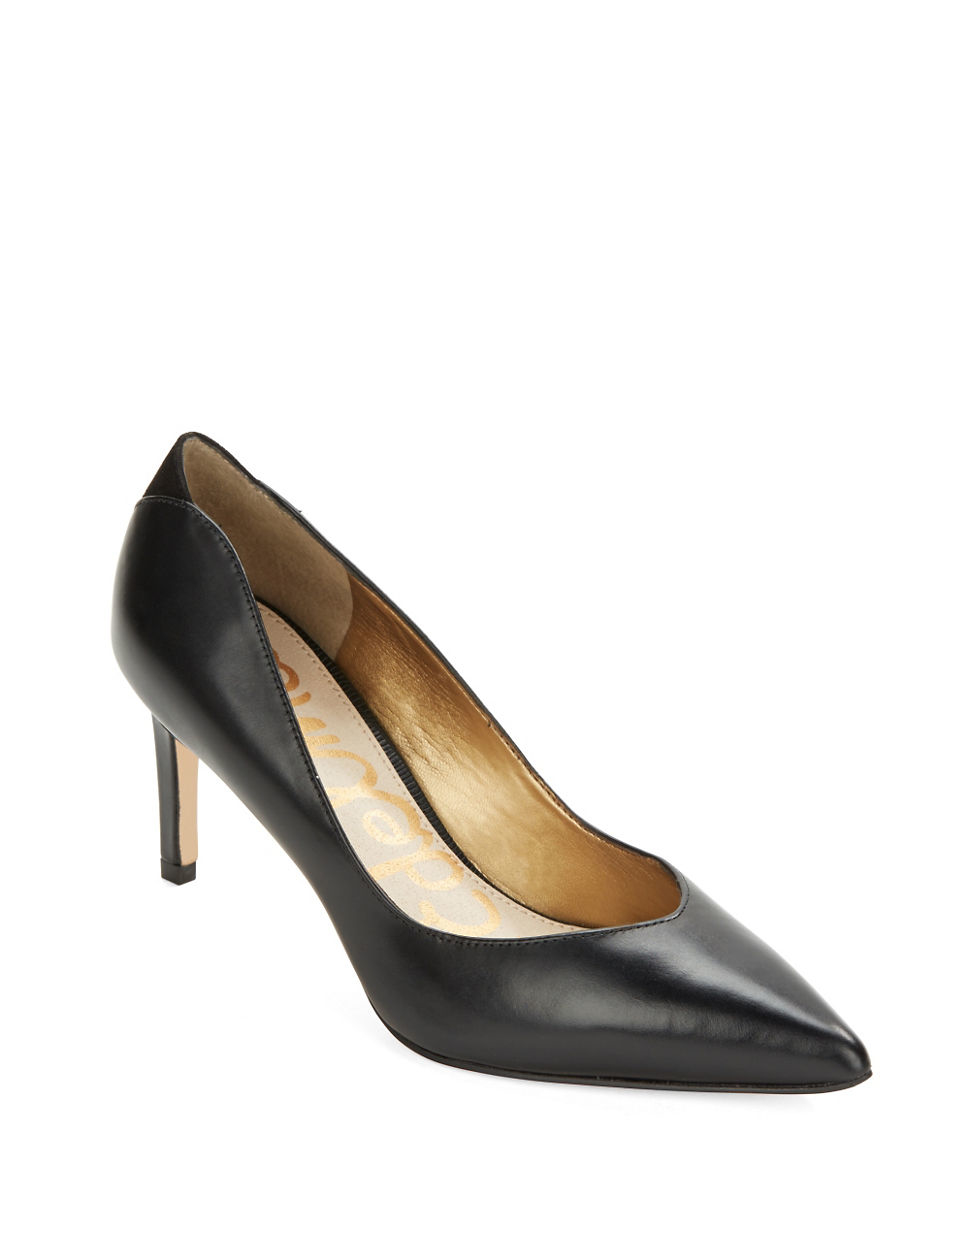 407a462039 Sam Edelman Orella Leather Pumps in Black - Lyst